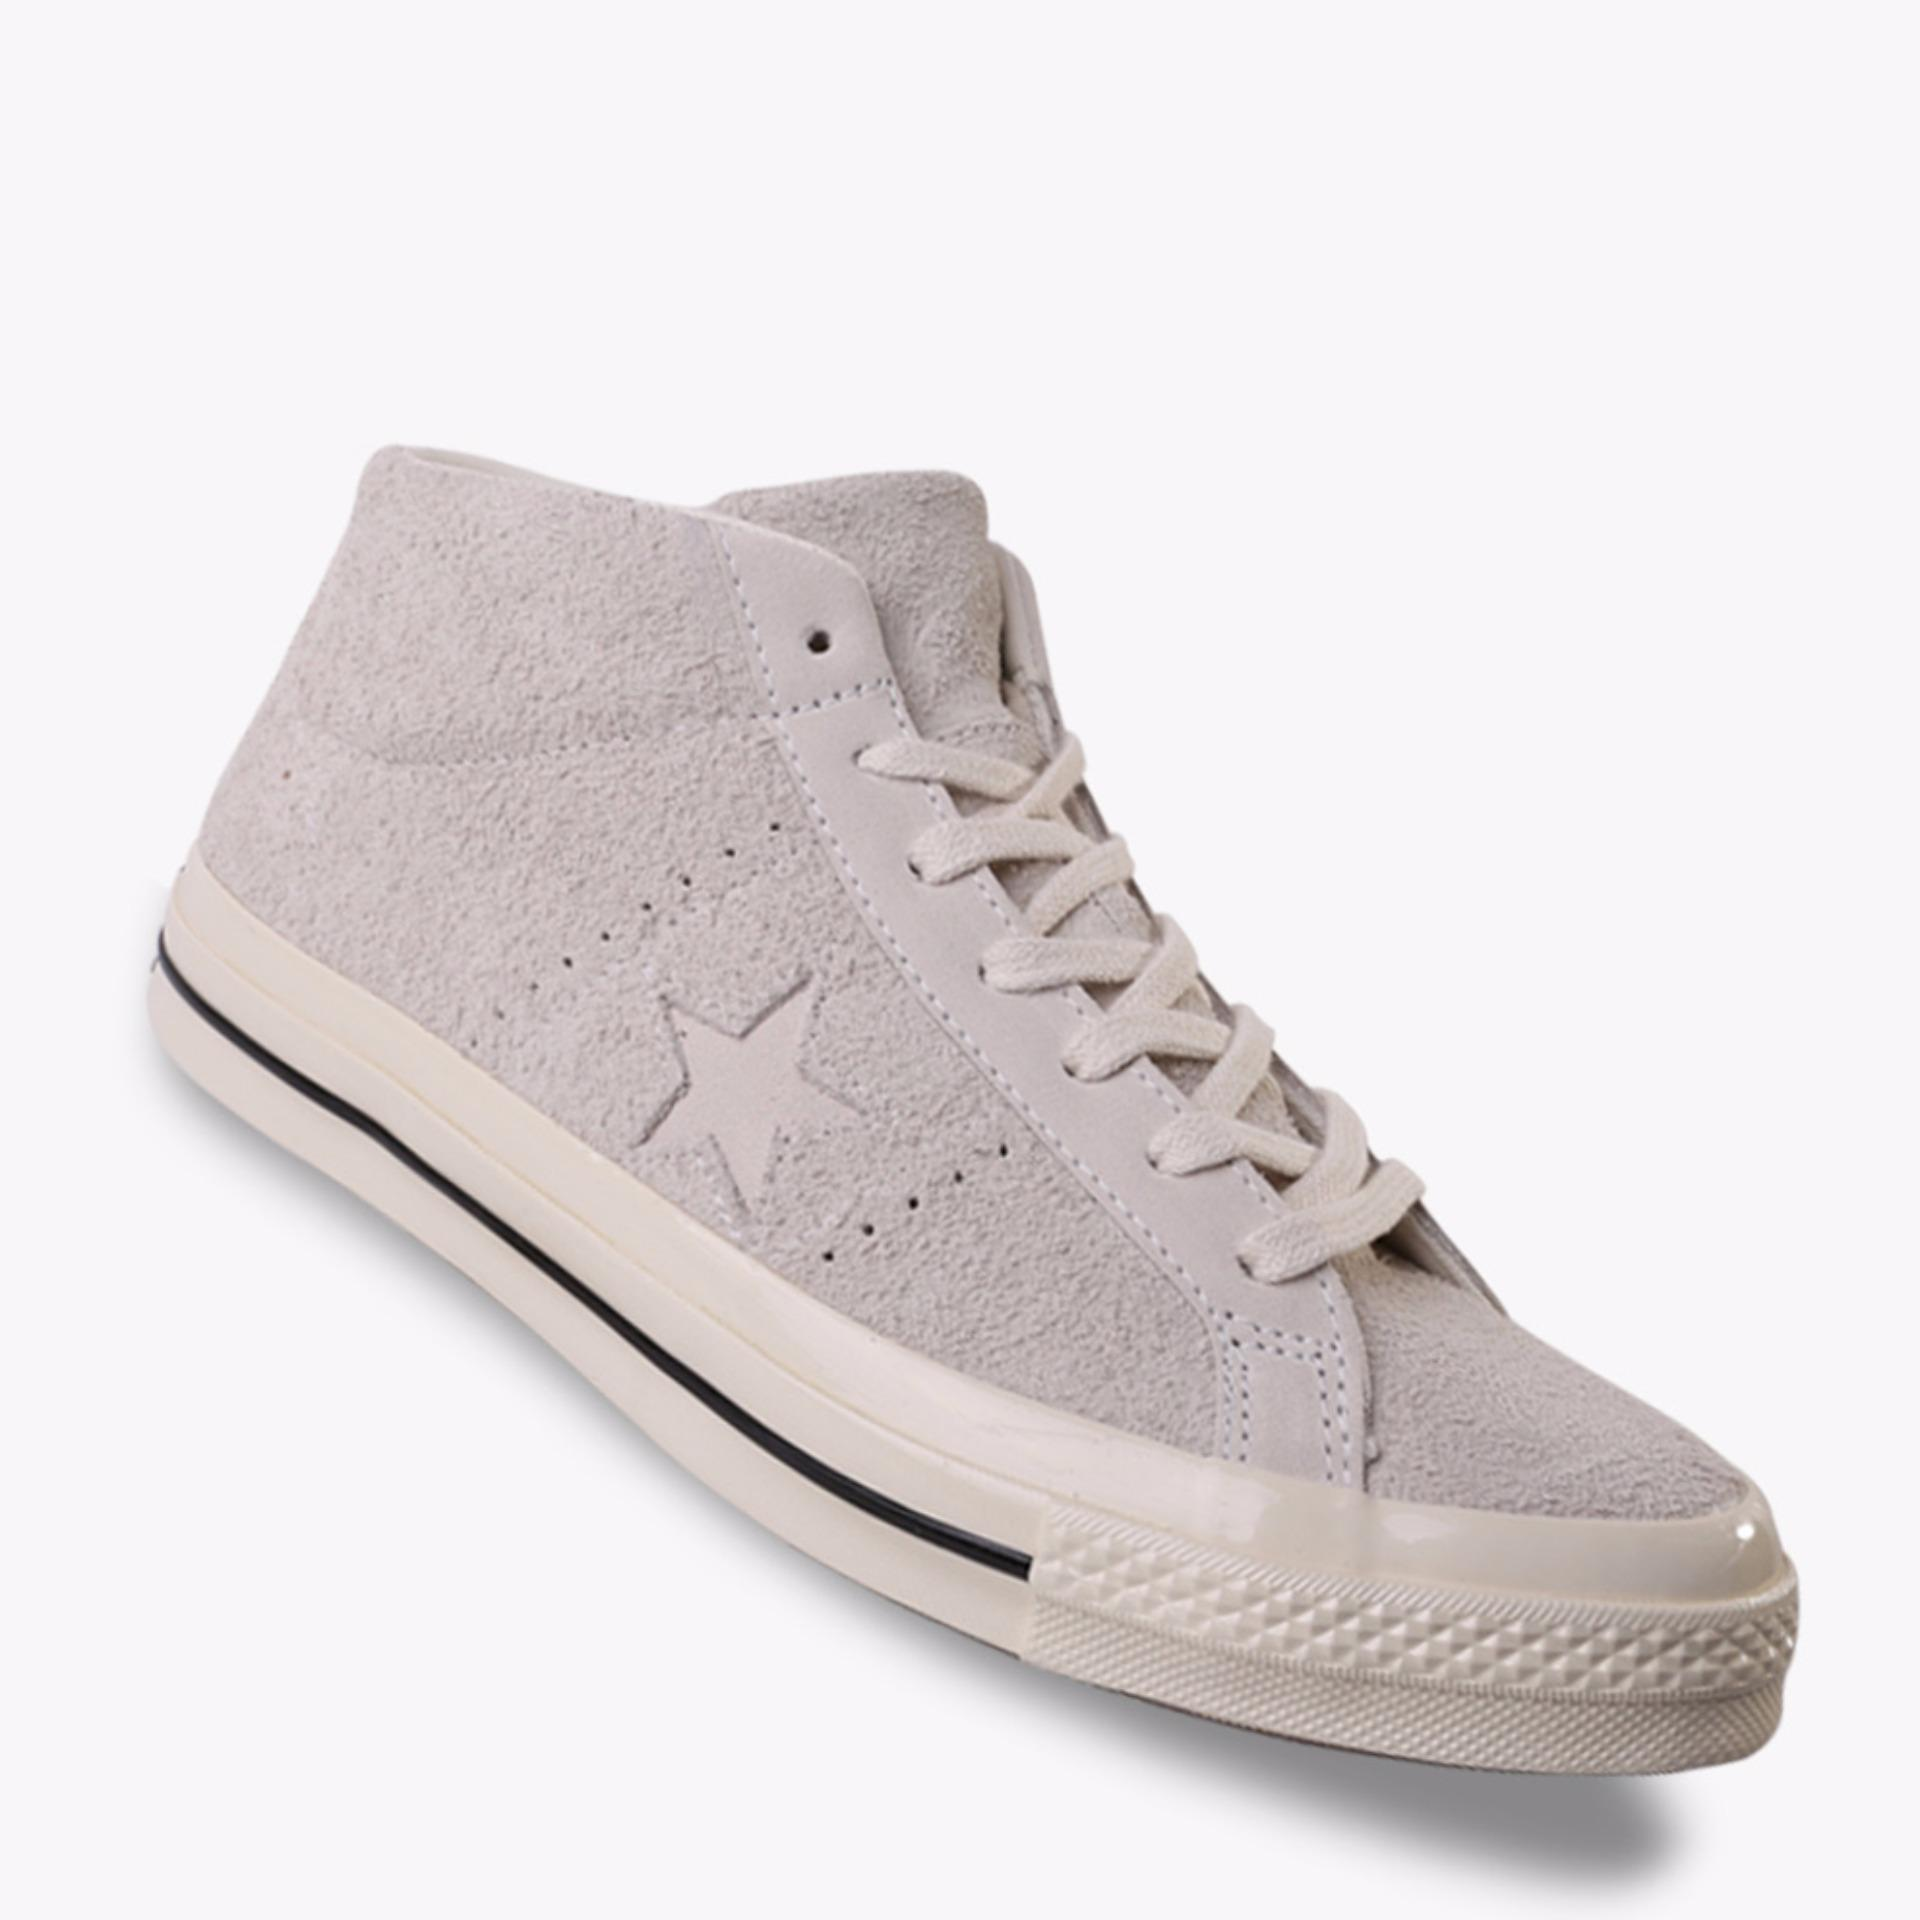 Toko Converse One Star Mid Suede Men S Sneakers Shoes Putih Converse Online